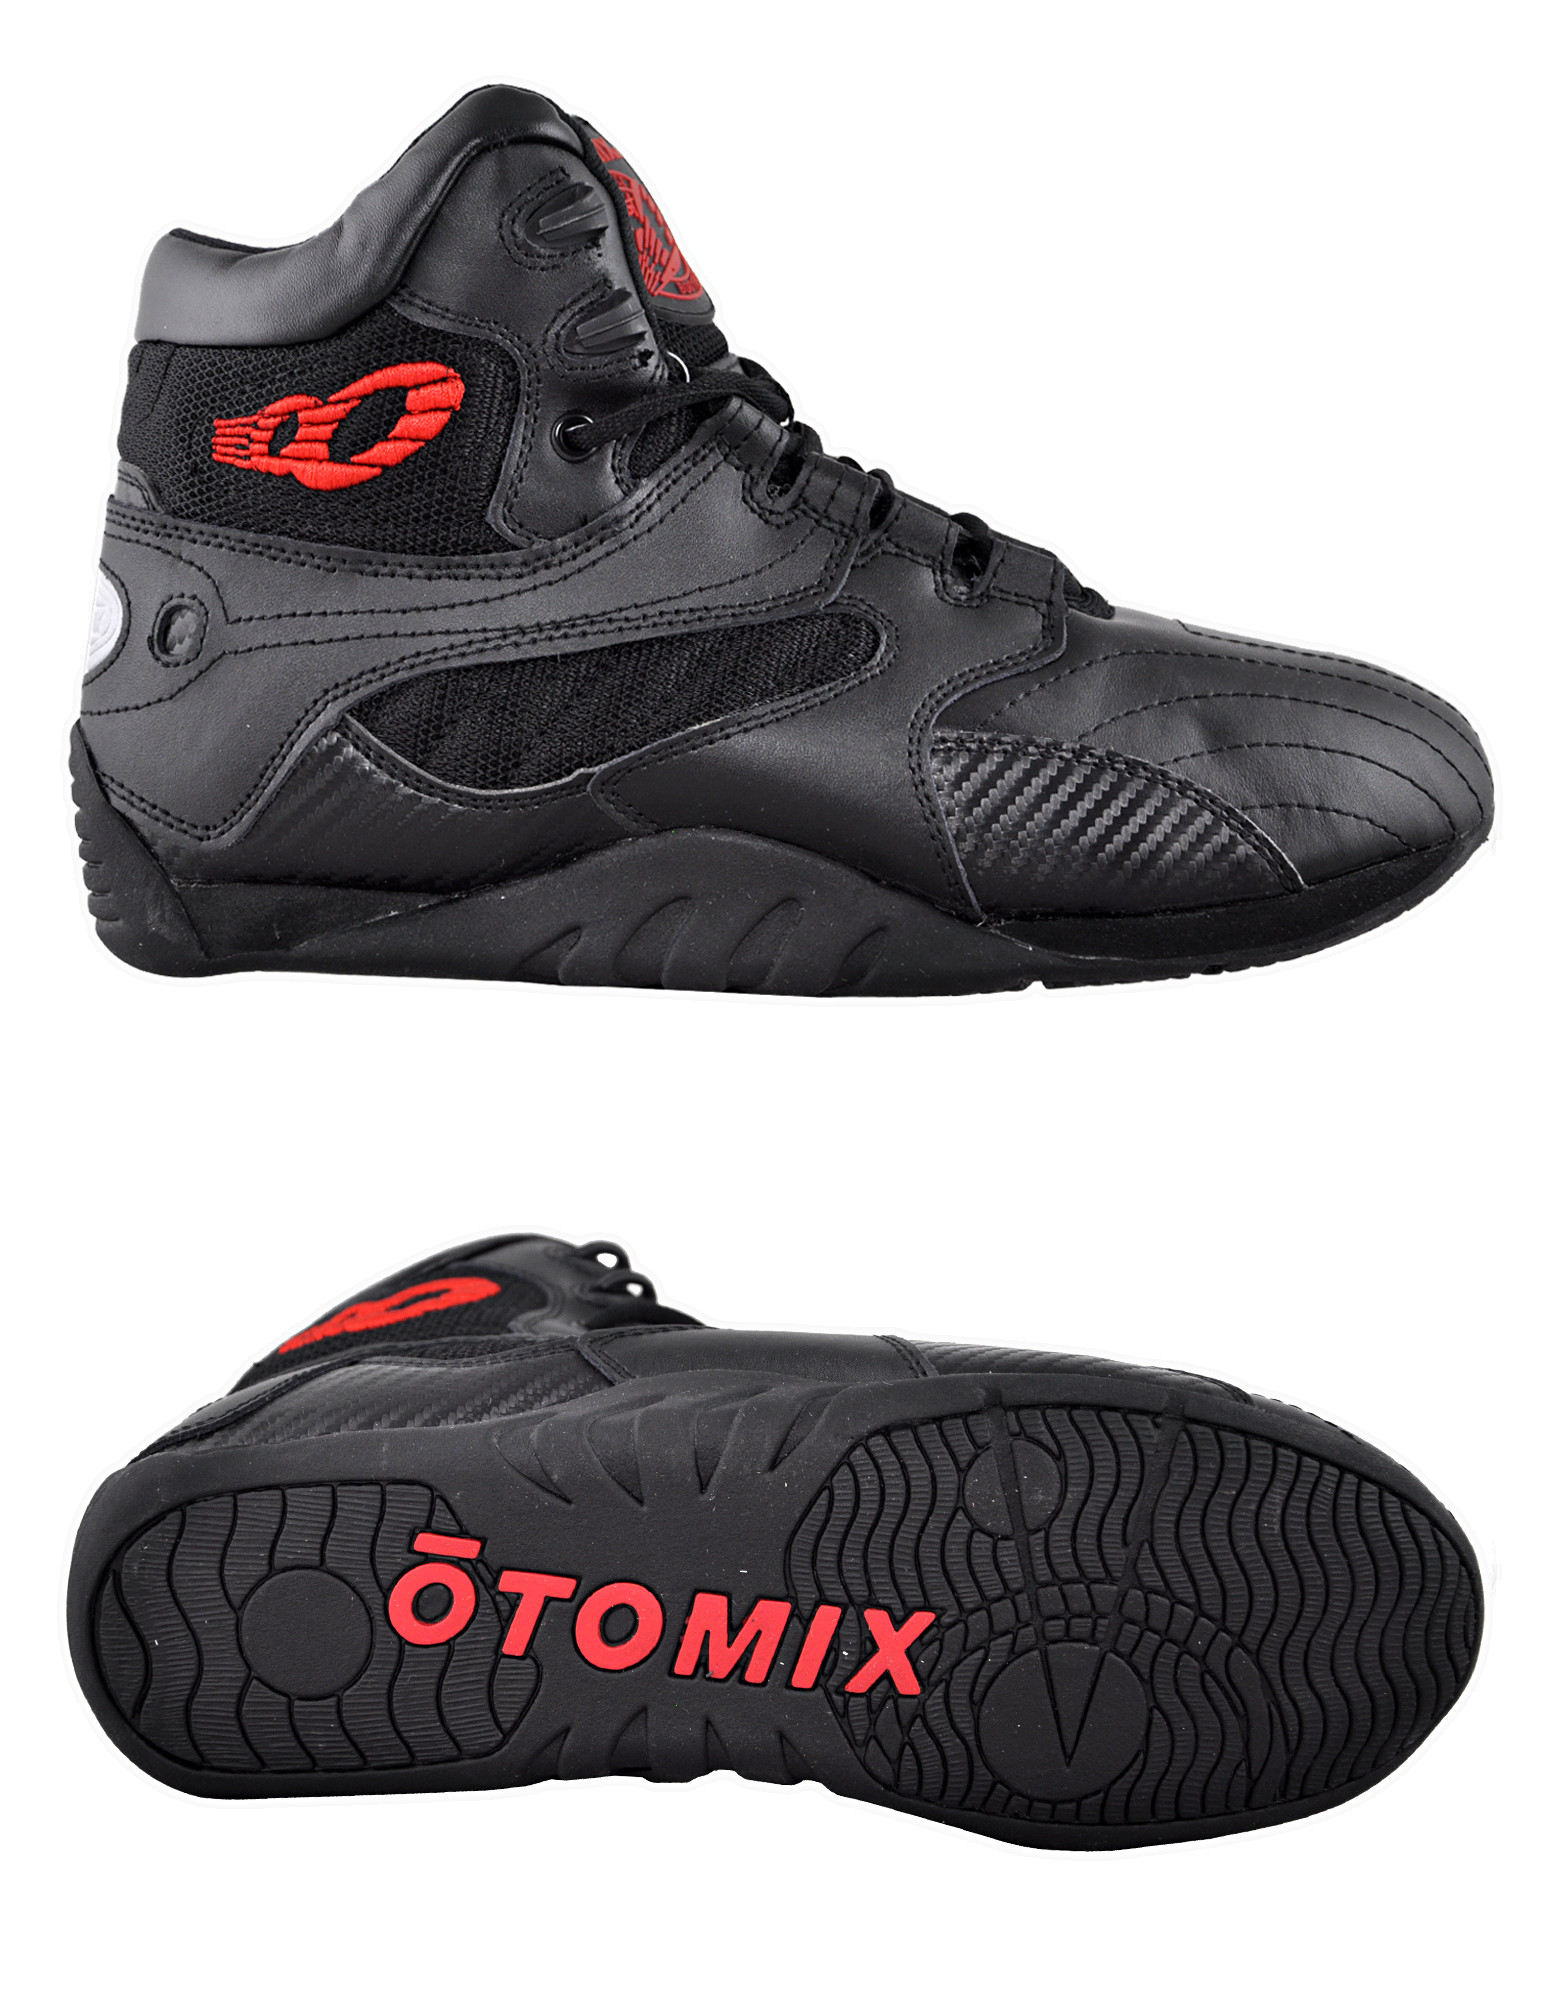 OTOMIX Ultimate Trainer